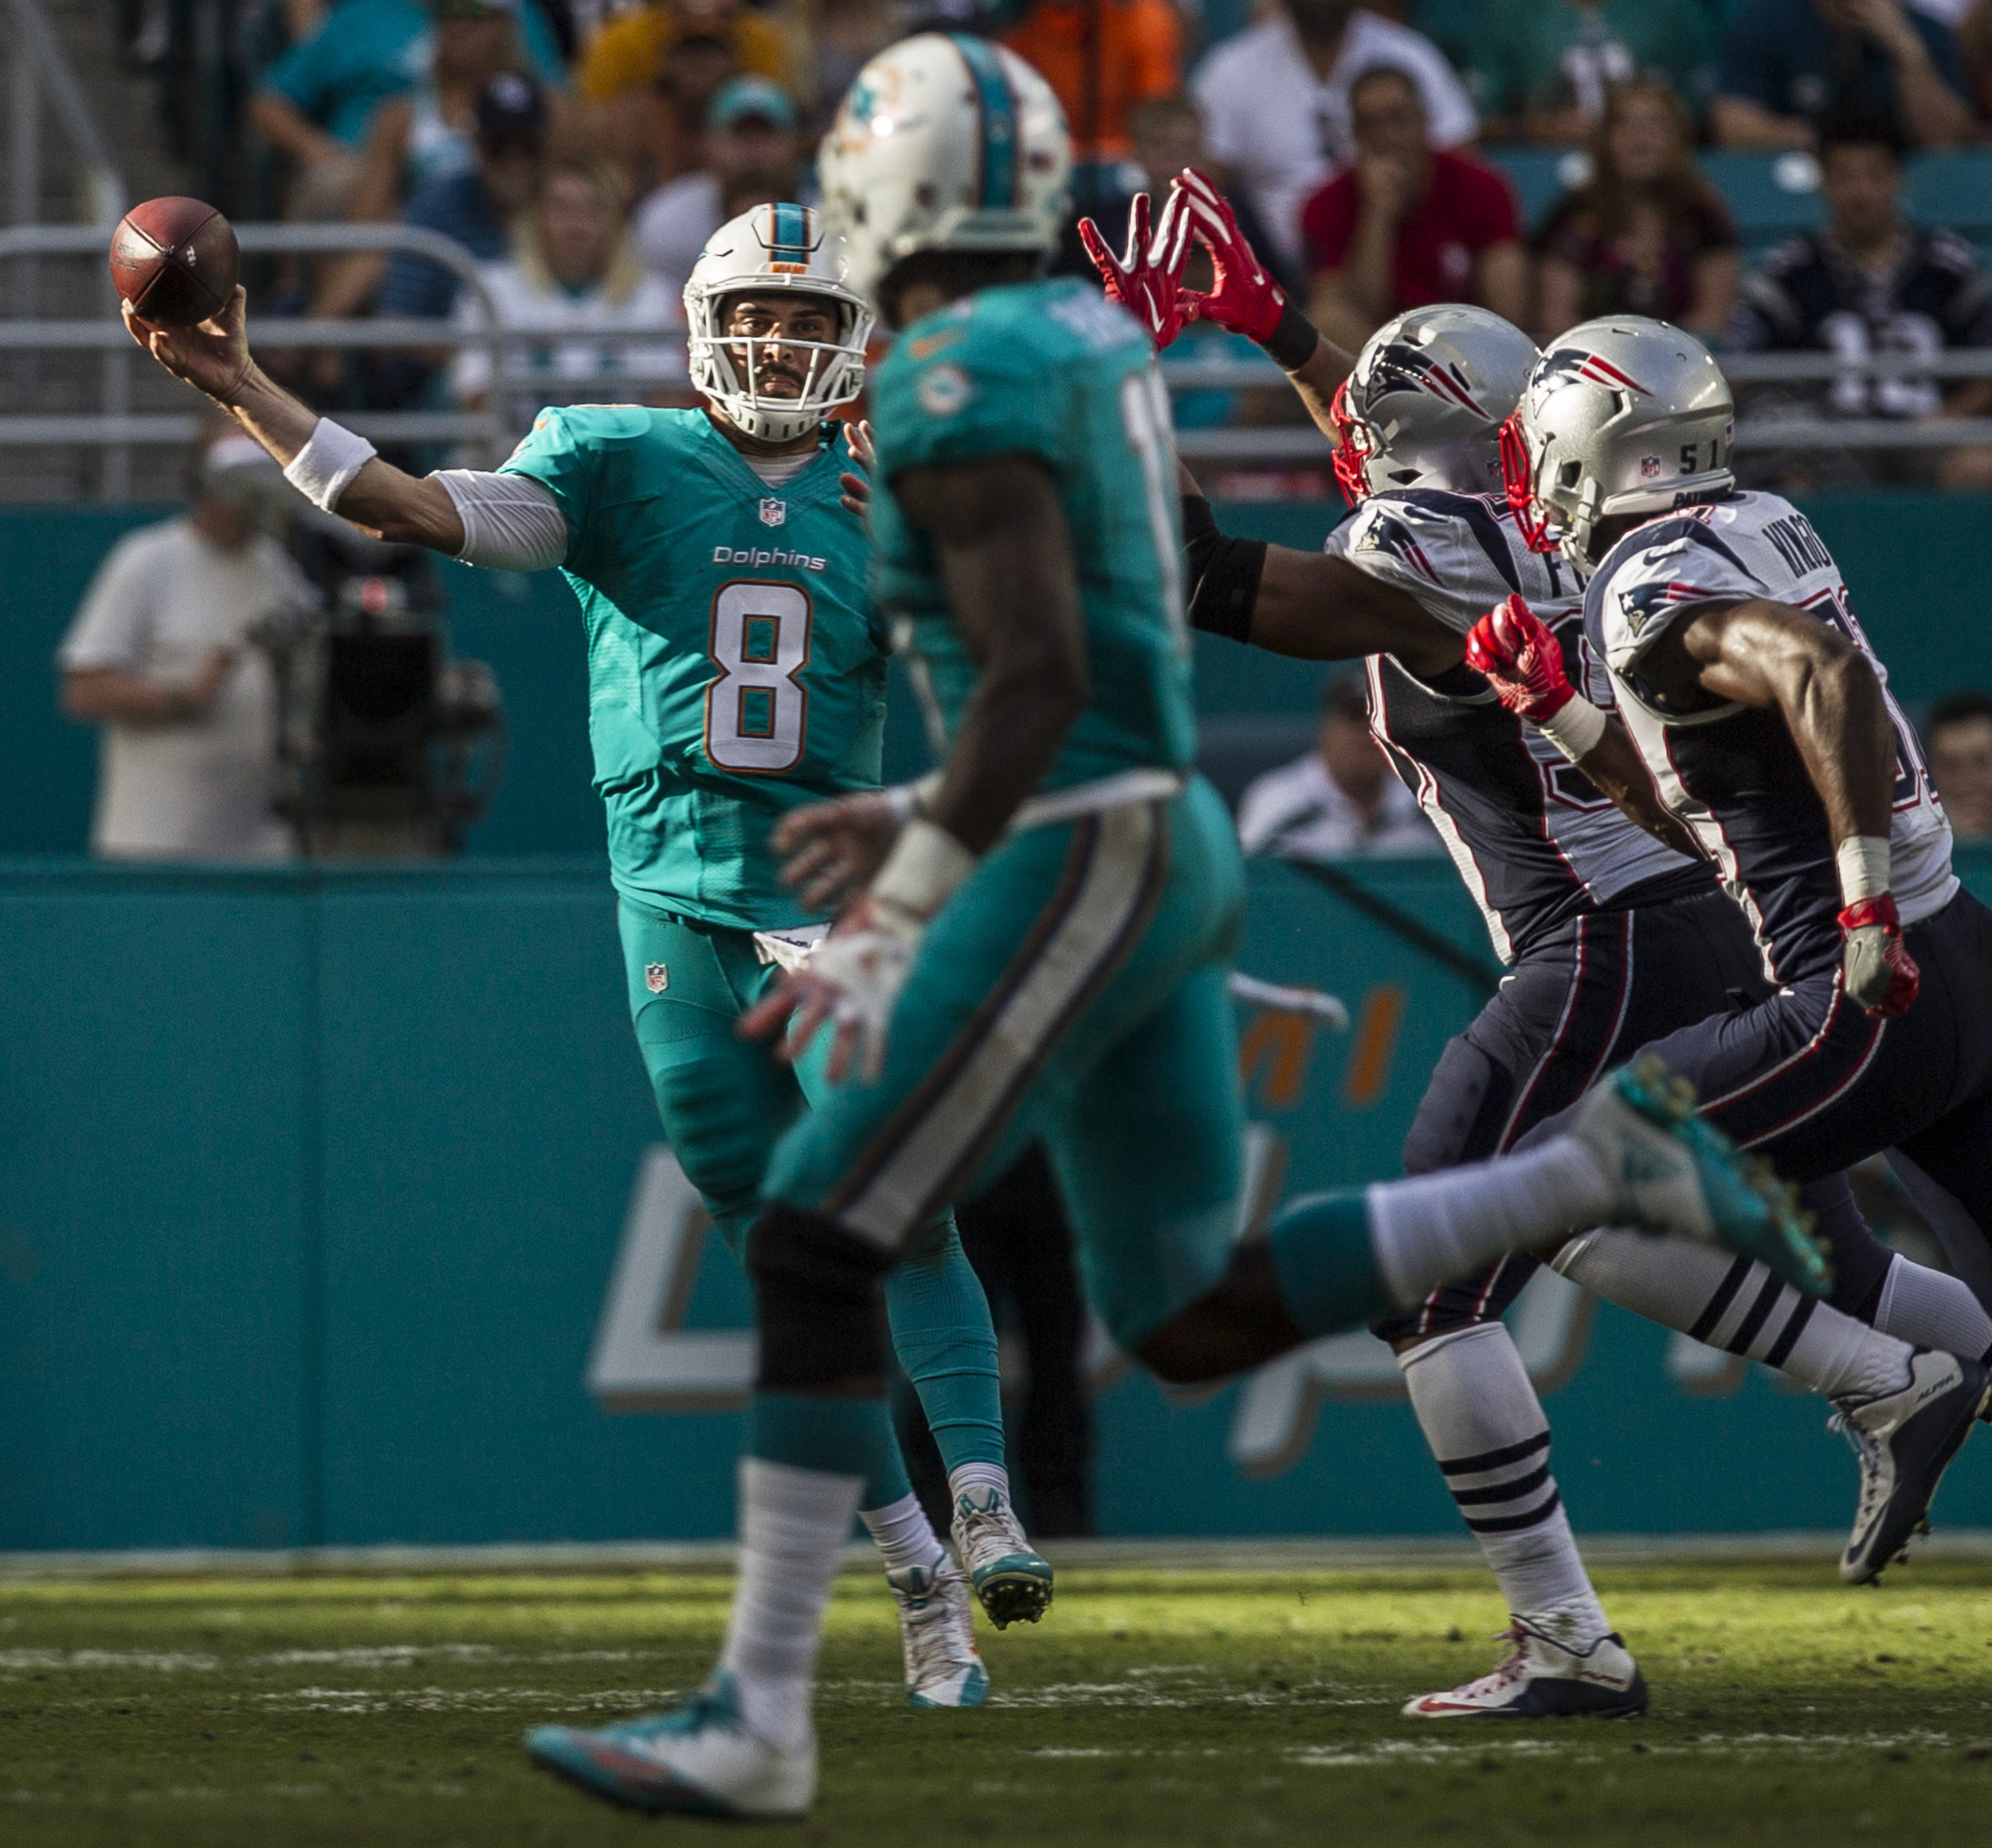 Miami Dolphins quarterback Matt Moore (8) attempts to complete a pass while being hurried by the New England Patriots pass rush at Hard Rock Stadium in Miami Gardens, Florida, January 1, 2017.